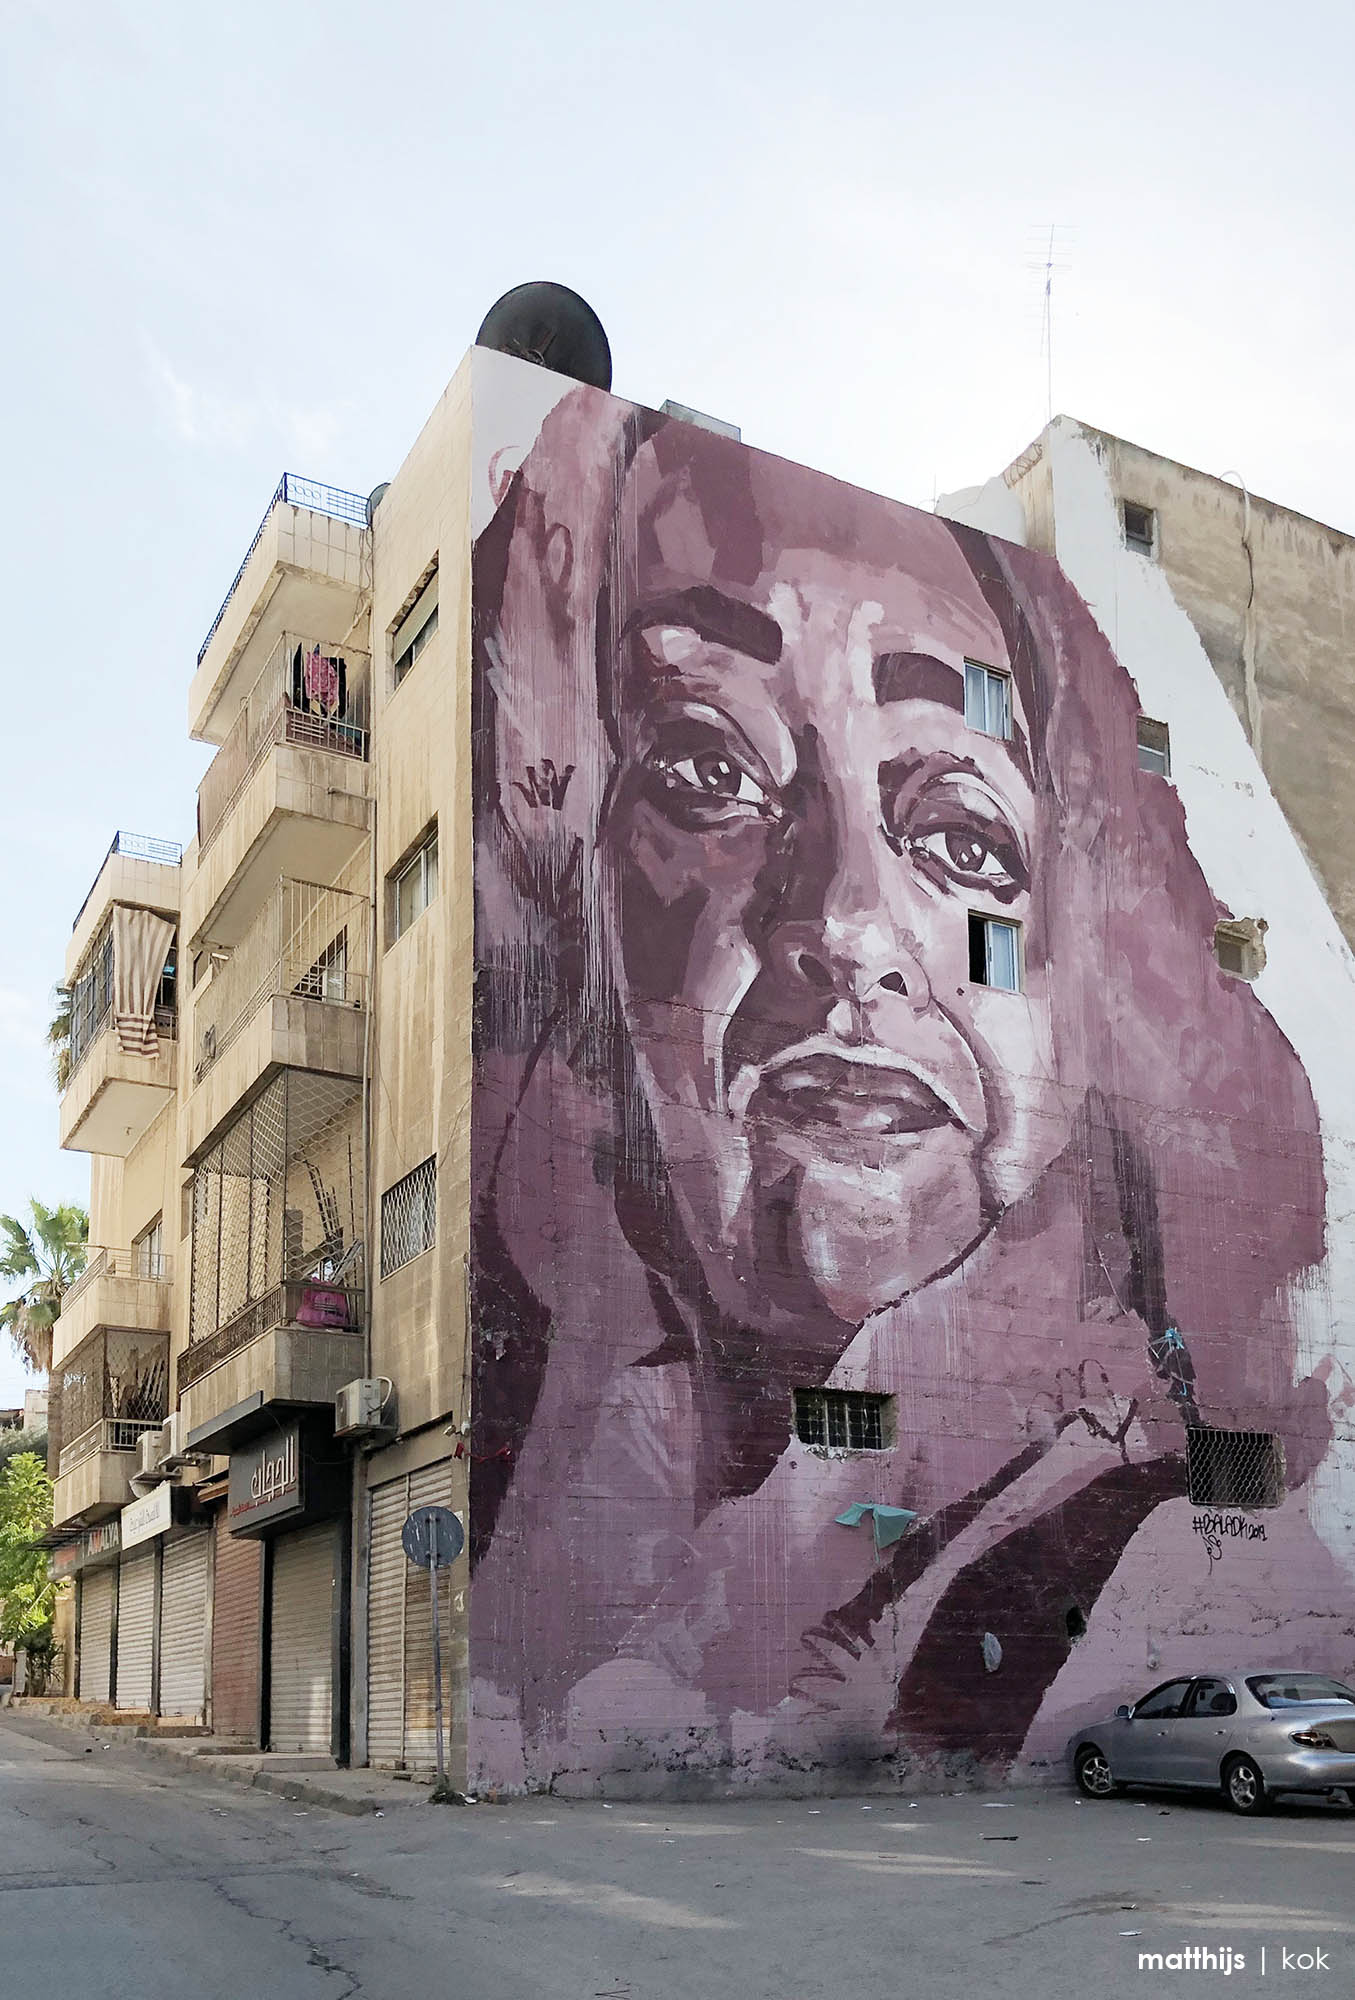 Zaha Hadid Mural, Amman, Jordan | Photo by Matthijs Kok